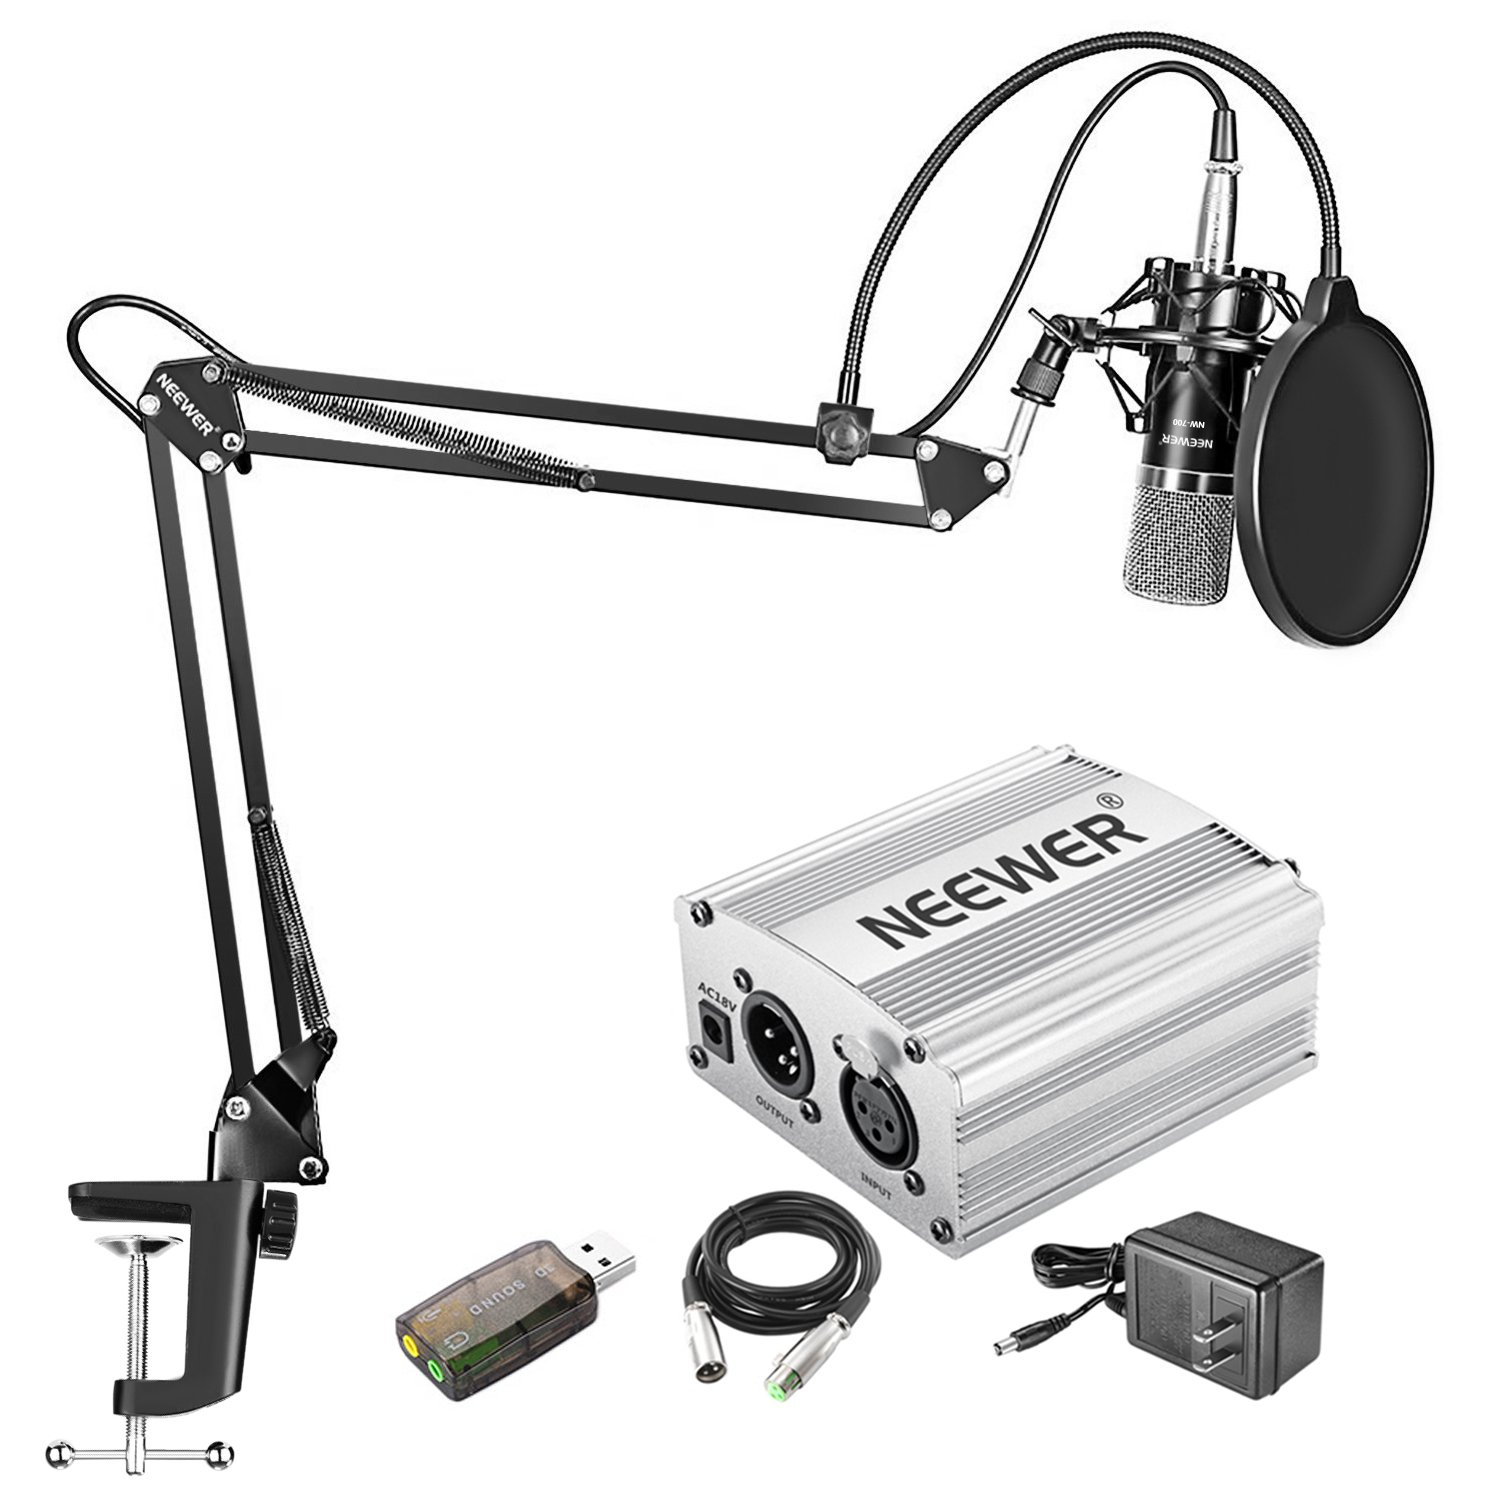 Neewer Home Studio NW-700 Condenser Microphone Kit with Shock Mount, NW-35 Boom Scissor Arm Stand, 48V Phantom Power Supply(Silver), XLR Cable, Pop Filter and Type-A USB External Stereo Sound Adapter